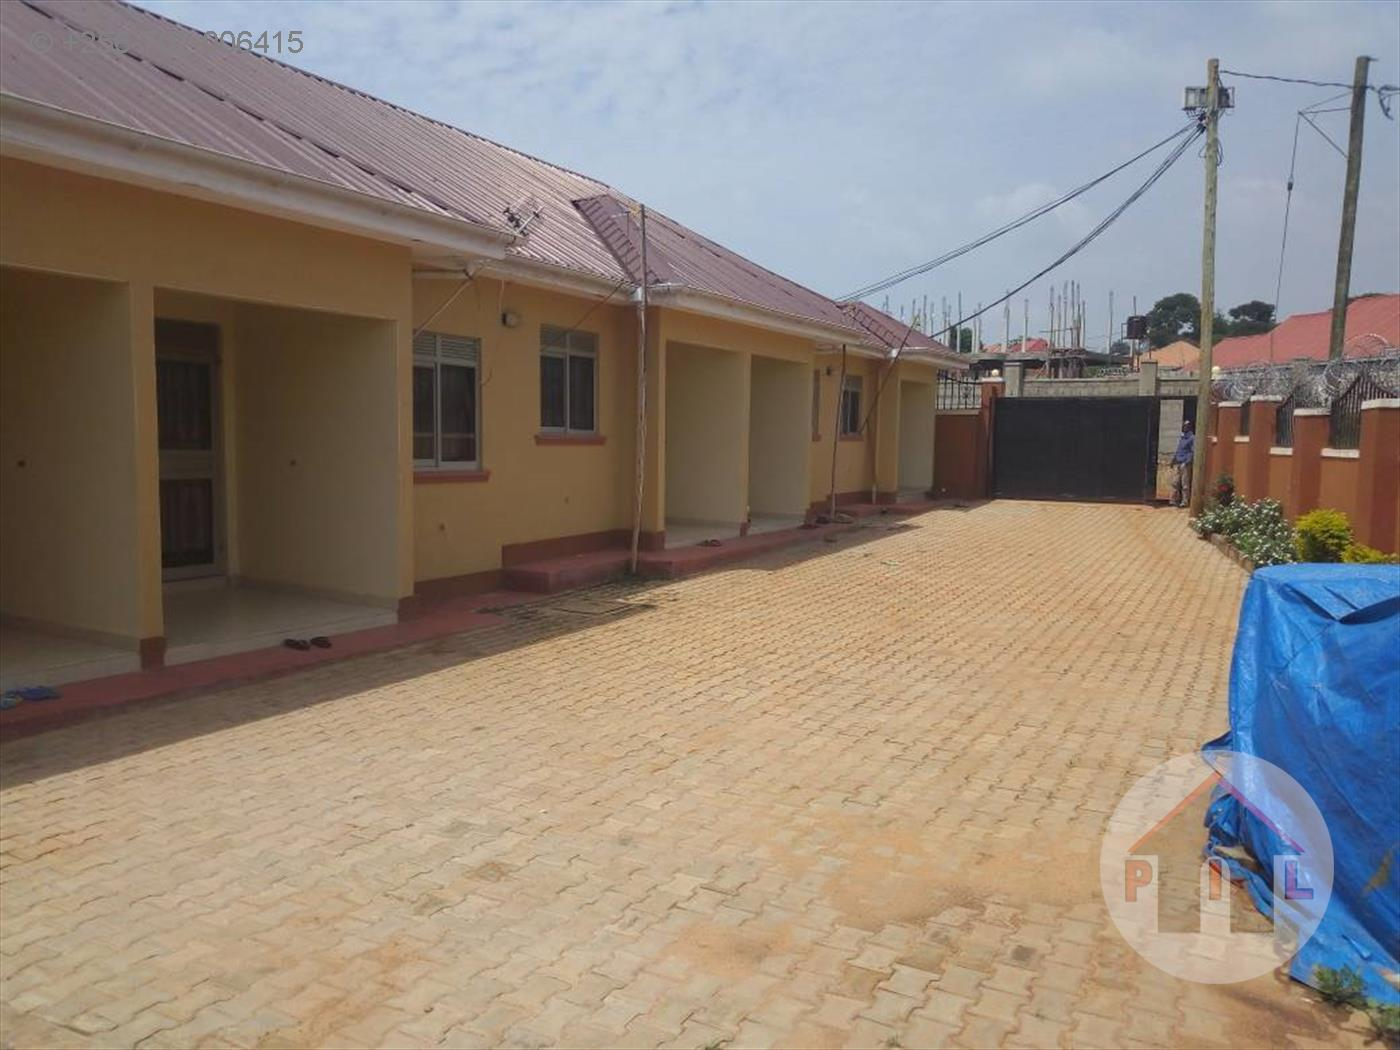 Rental units (for sale) for sale in Namugongo Wakiso